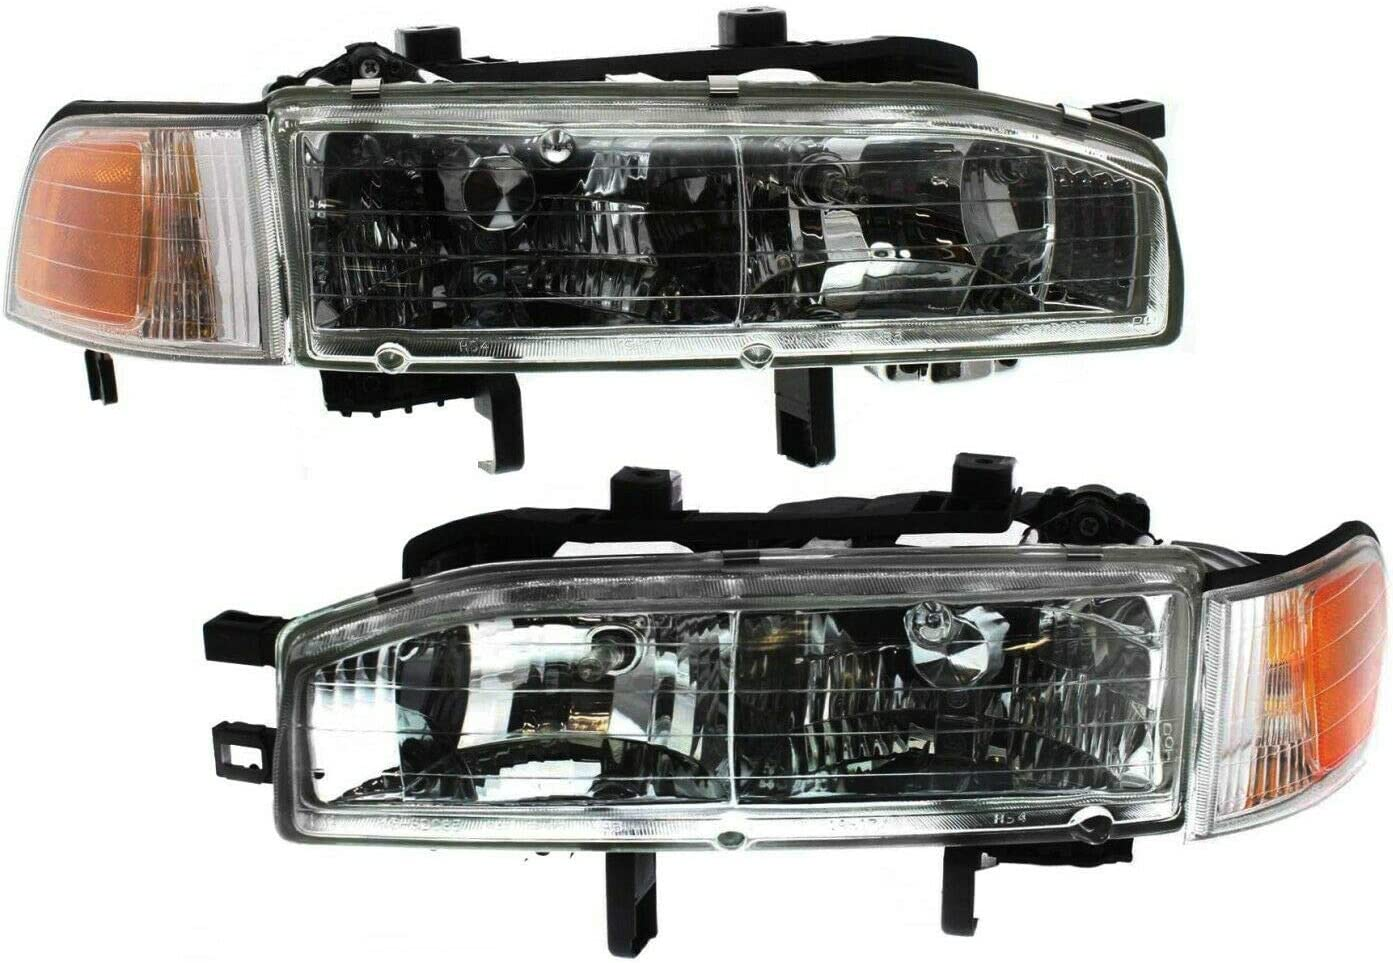 Niviora Headlight Set Safety and trust Compatible with Max 77% OFF Left Ri Accord 1992-93